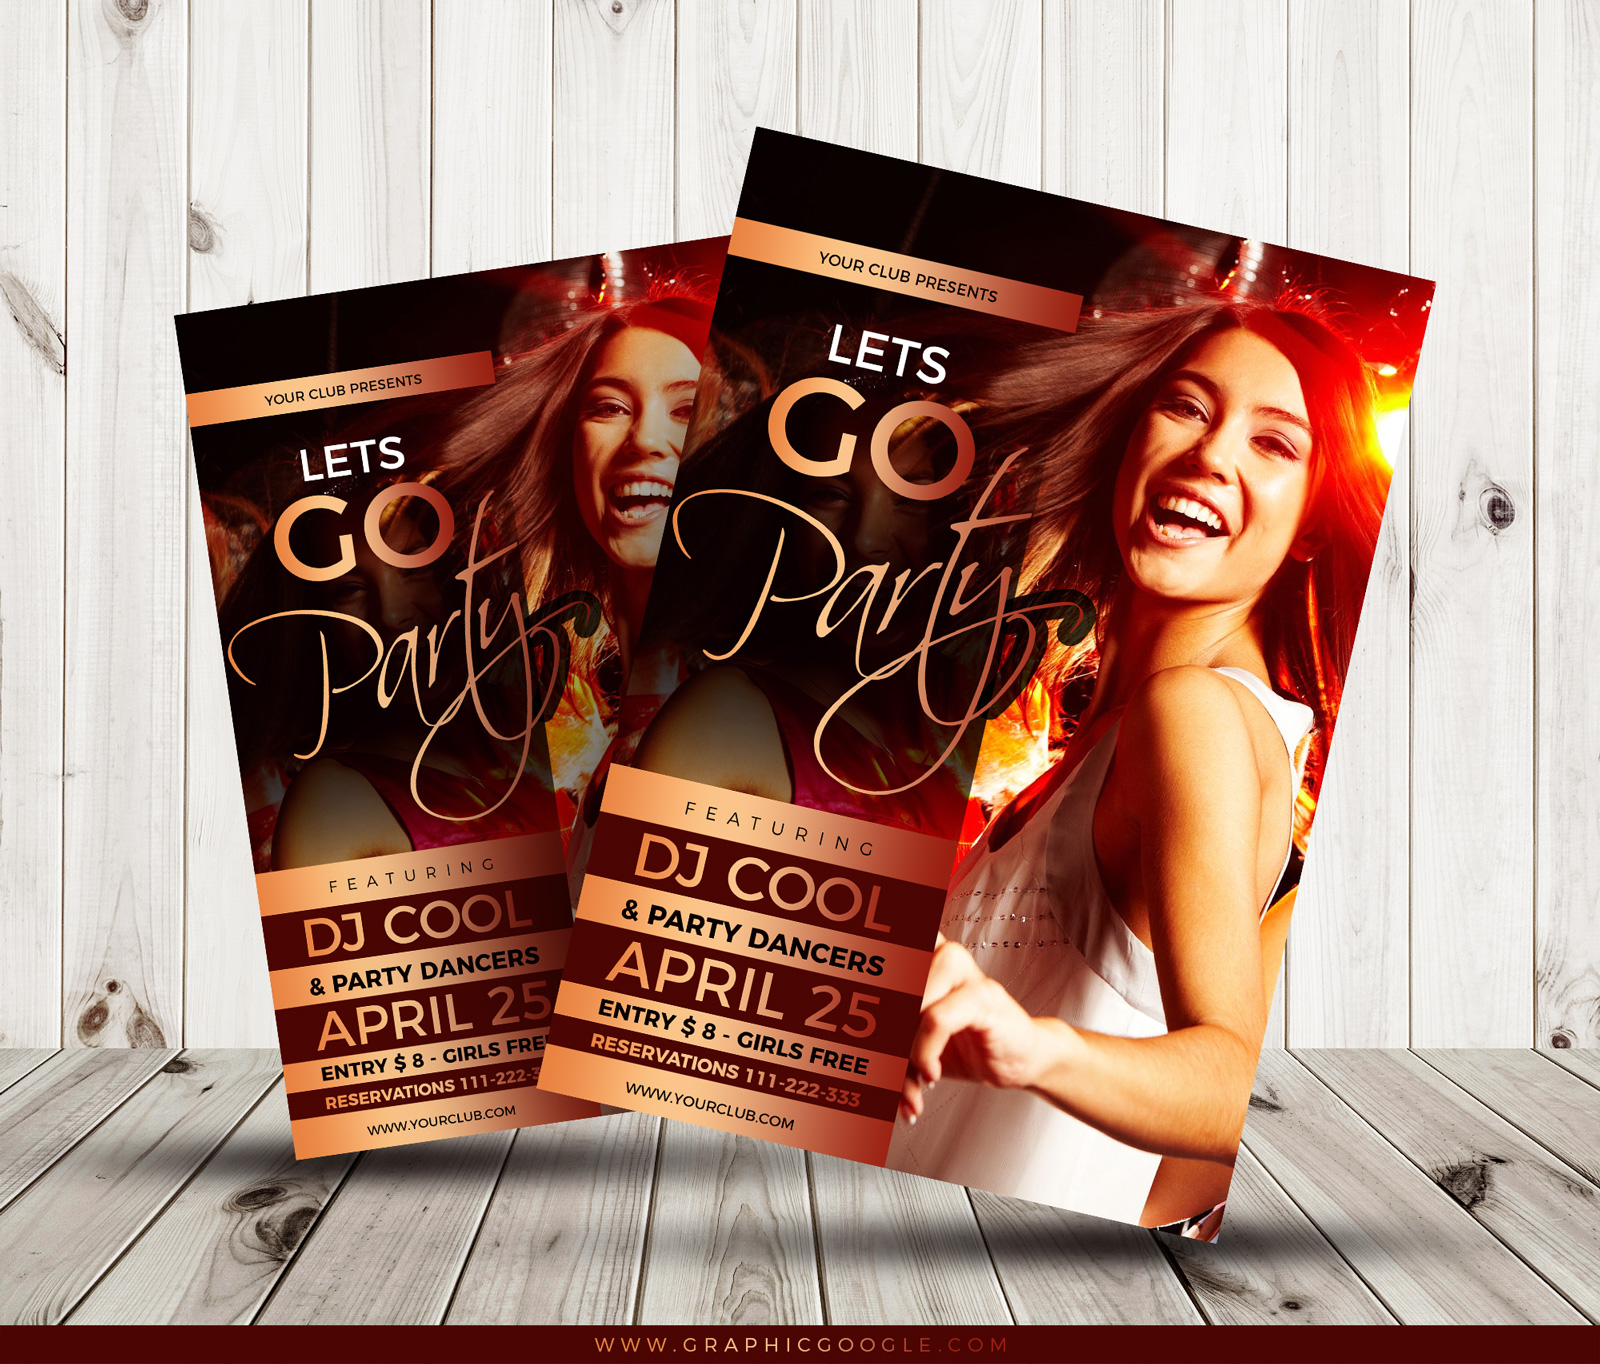 flyers archives graphic google tasty graphic designs collection cool party flyer template design